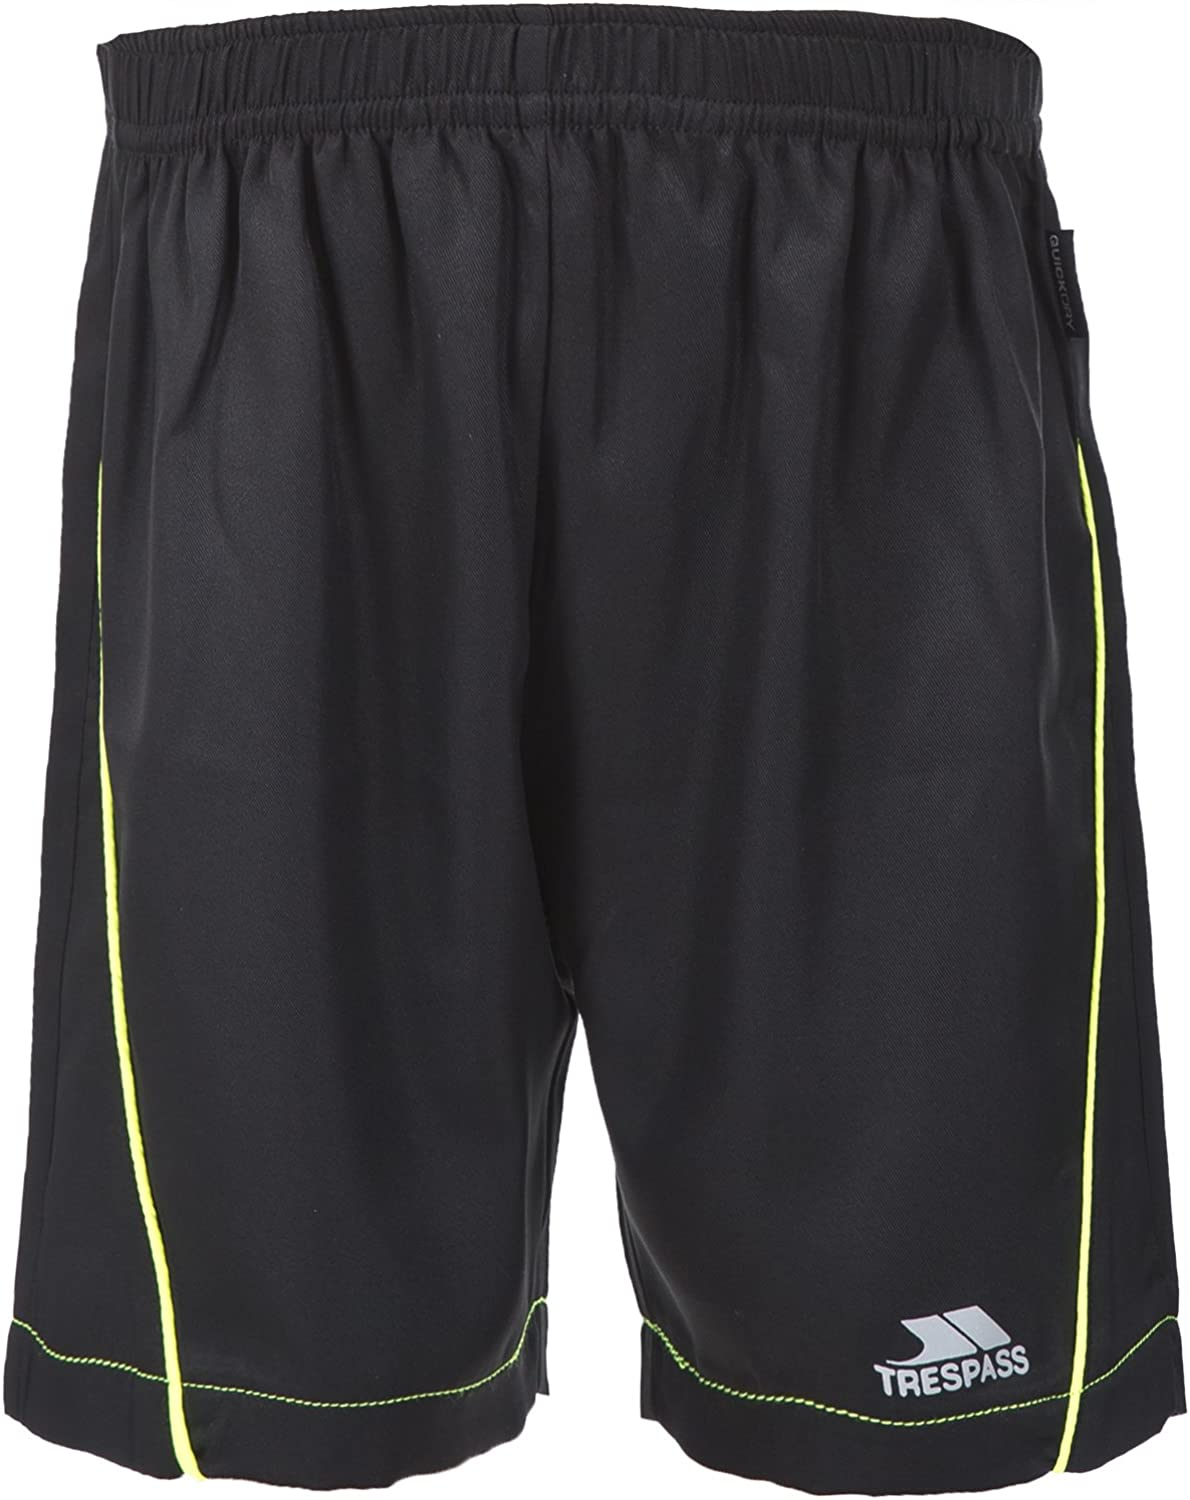 Trespass Bandit Boys Active Black Summer Football Gym Sports Shorts